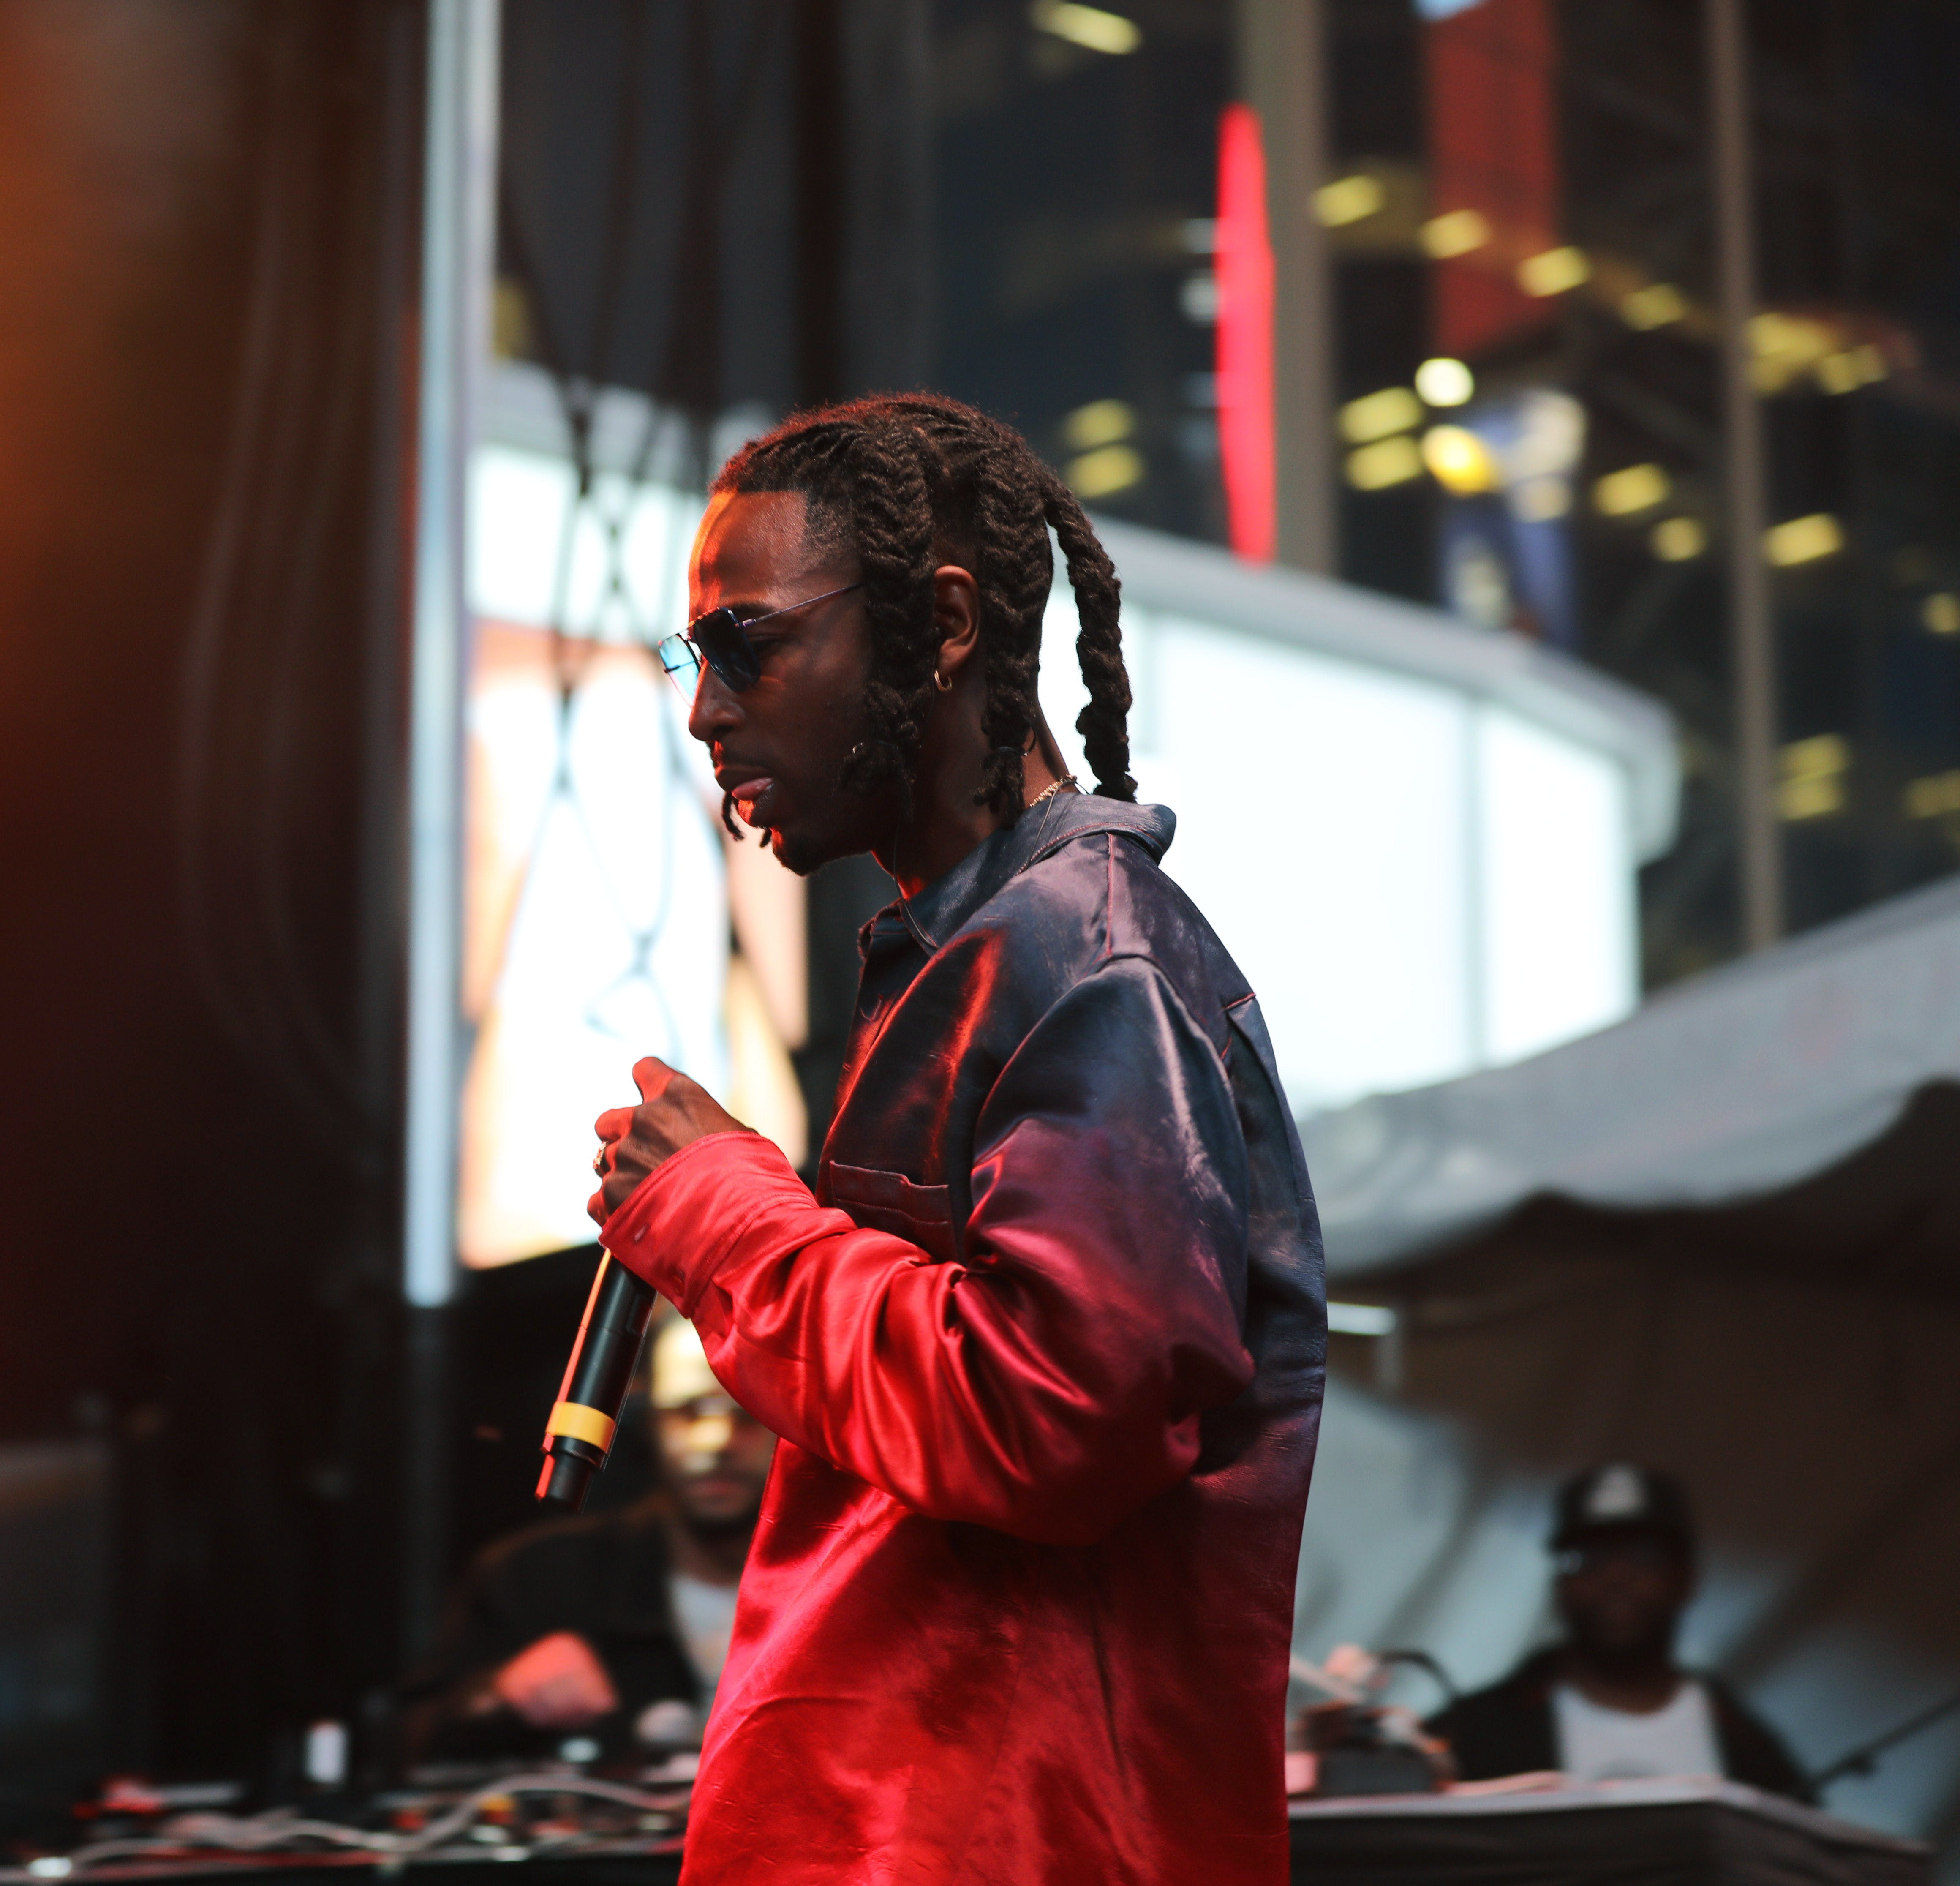 Cannabis Producer Aurora Revitalizes Iconic Toronto Music Festival North By Northeast Jazz Caribbean Nations Are Seriously Thinking About Cannabis Decriminalization